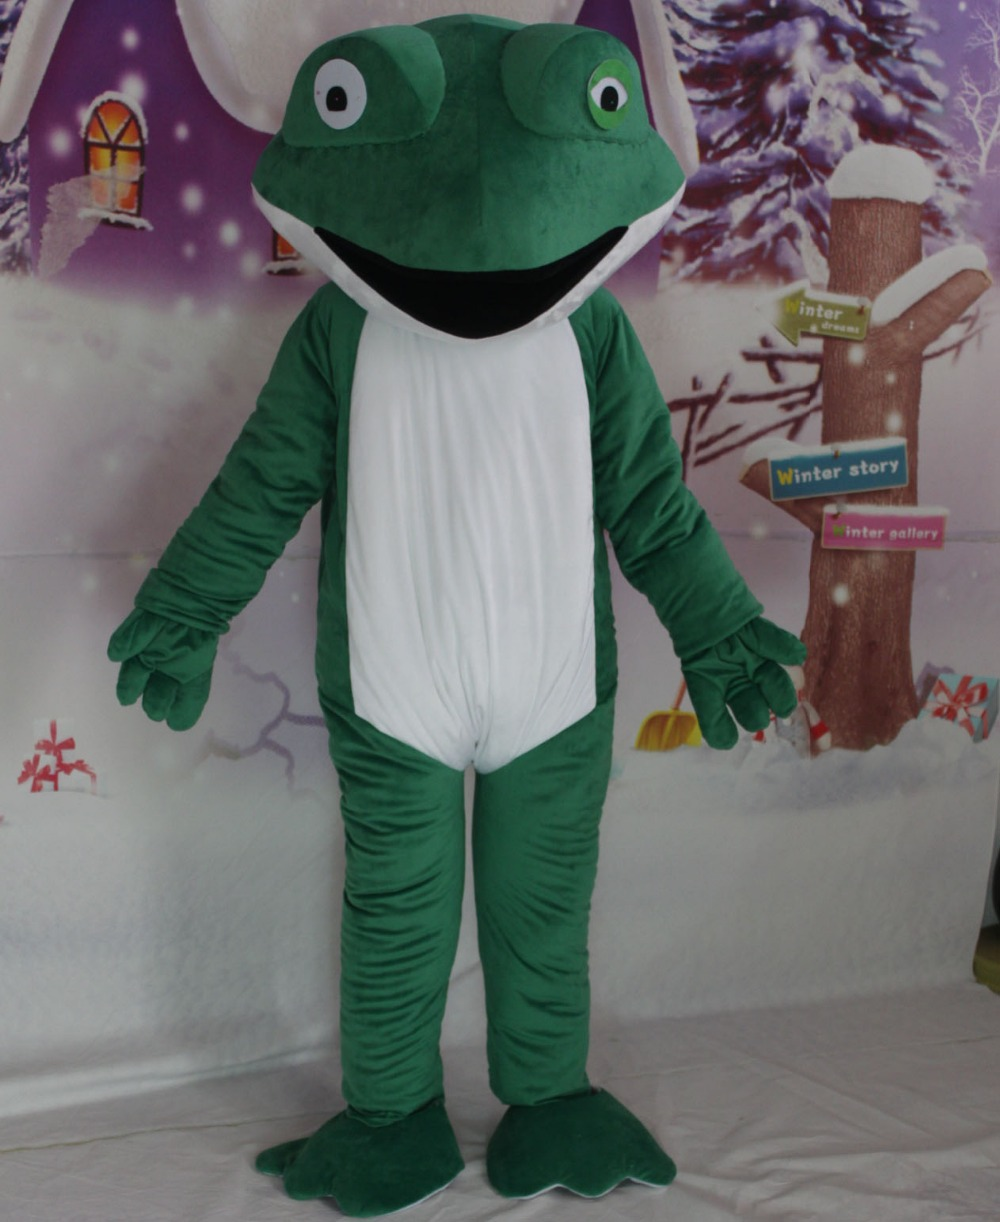 big frog mascot frog costumes frog mascot costume for adults-in Mascot from Novelty u0026 Special Use on Aliexpress.com | Alibaba Group & big frog mascot frog costumes frog mascot costume for adults-in ...